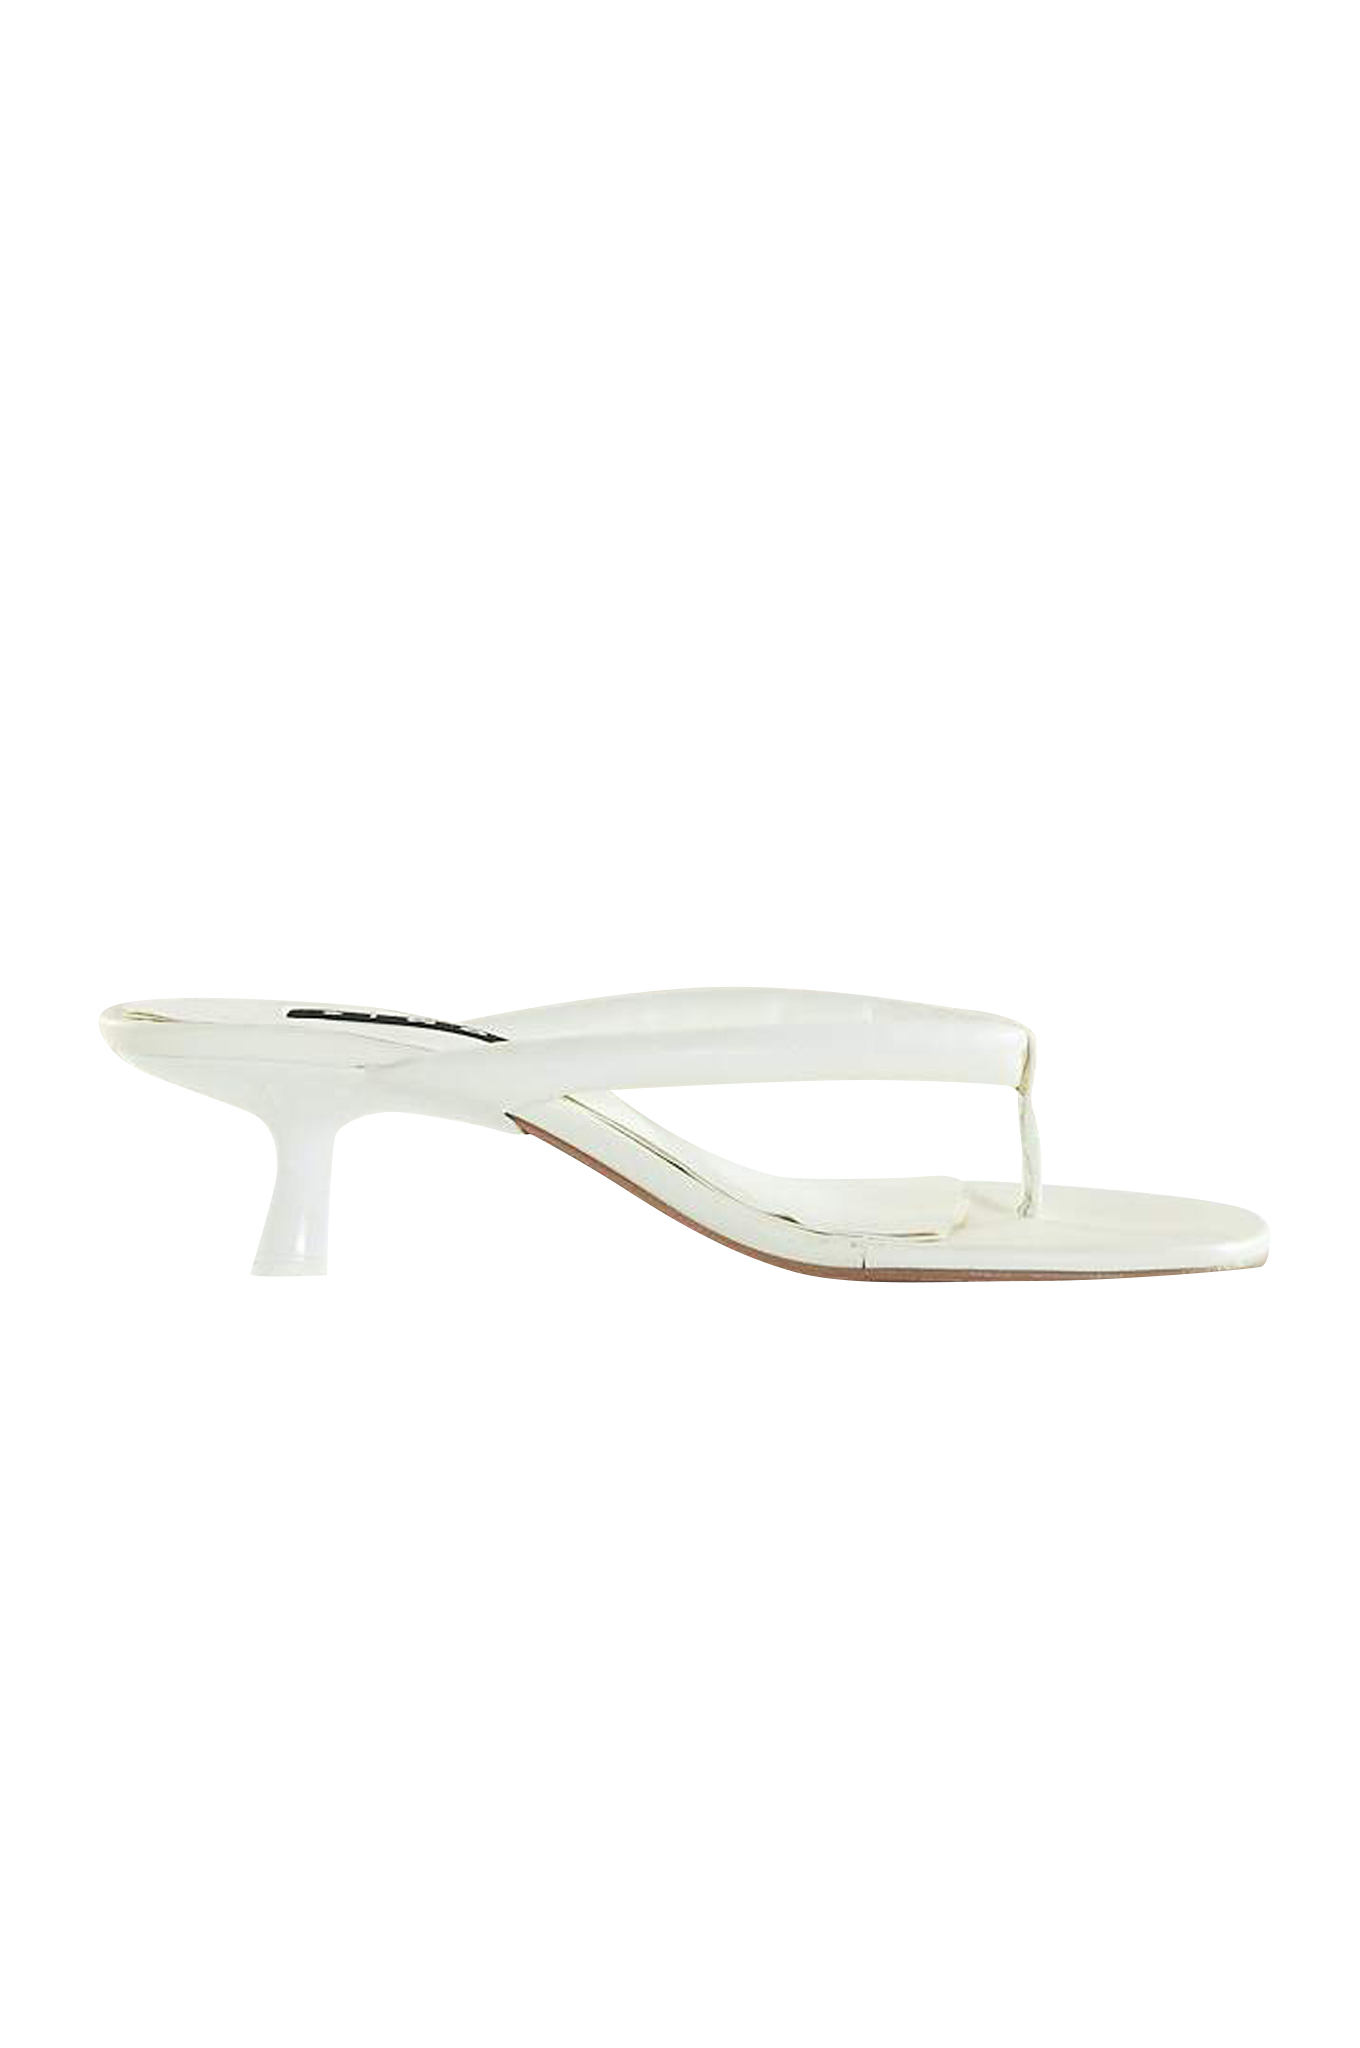 VEGAN LEATHER Beep Thong in White by Simon Miller - 1